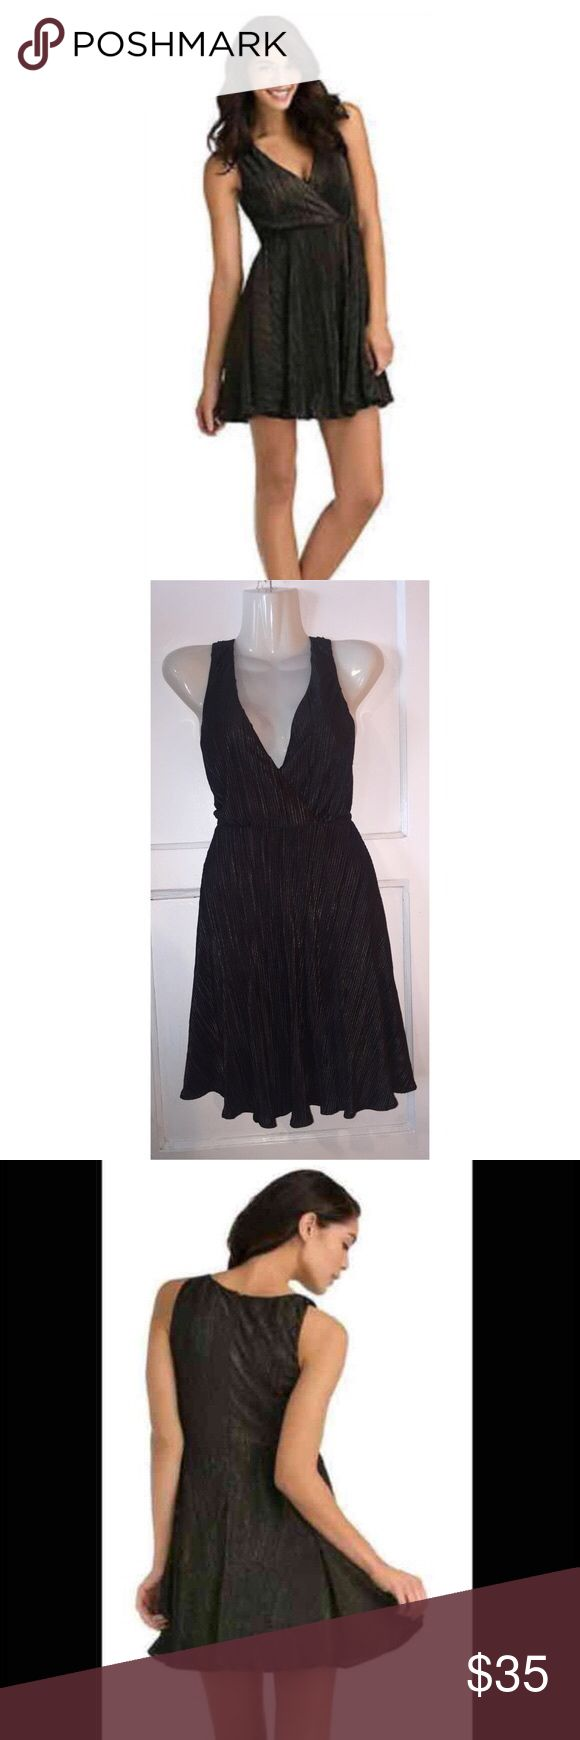 Kardashian Kollection Fit and Flare Dress In excellent condition. Worn once for photo. Has gold reflects, really pretty. Kardashian Kollection Dresses Mini